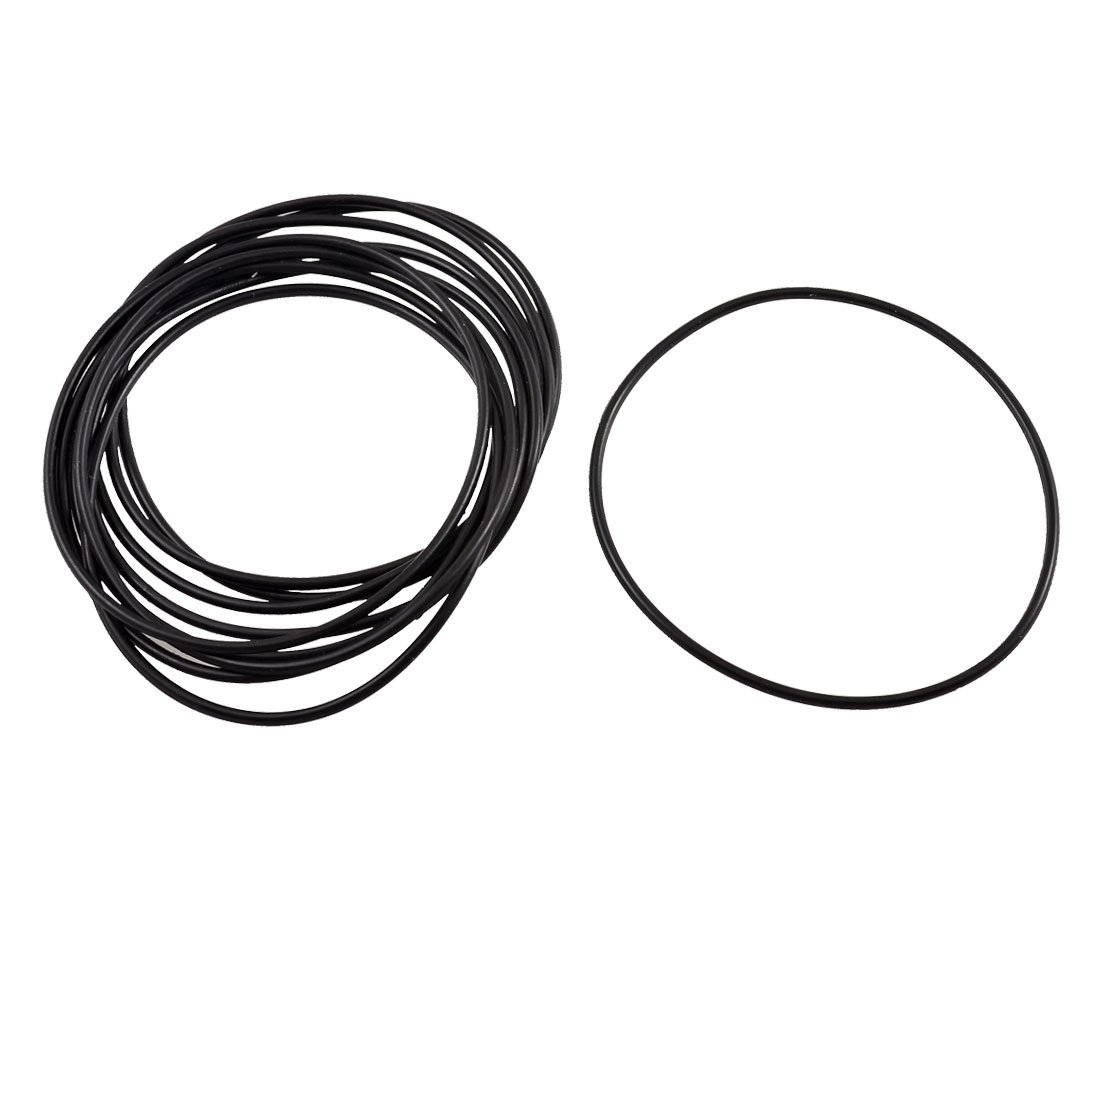 10 Pcs Black Rubber Oil Seal O Ring Sealing Gasket Washer 58mm x 1.8mm Sourcingmap a12100800ux1111